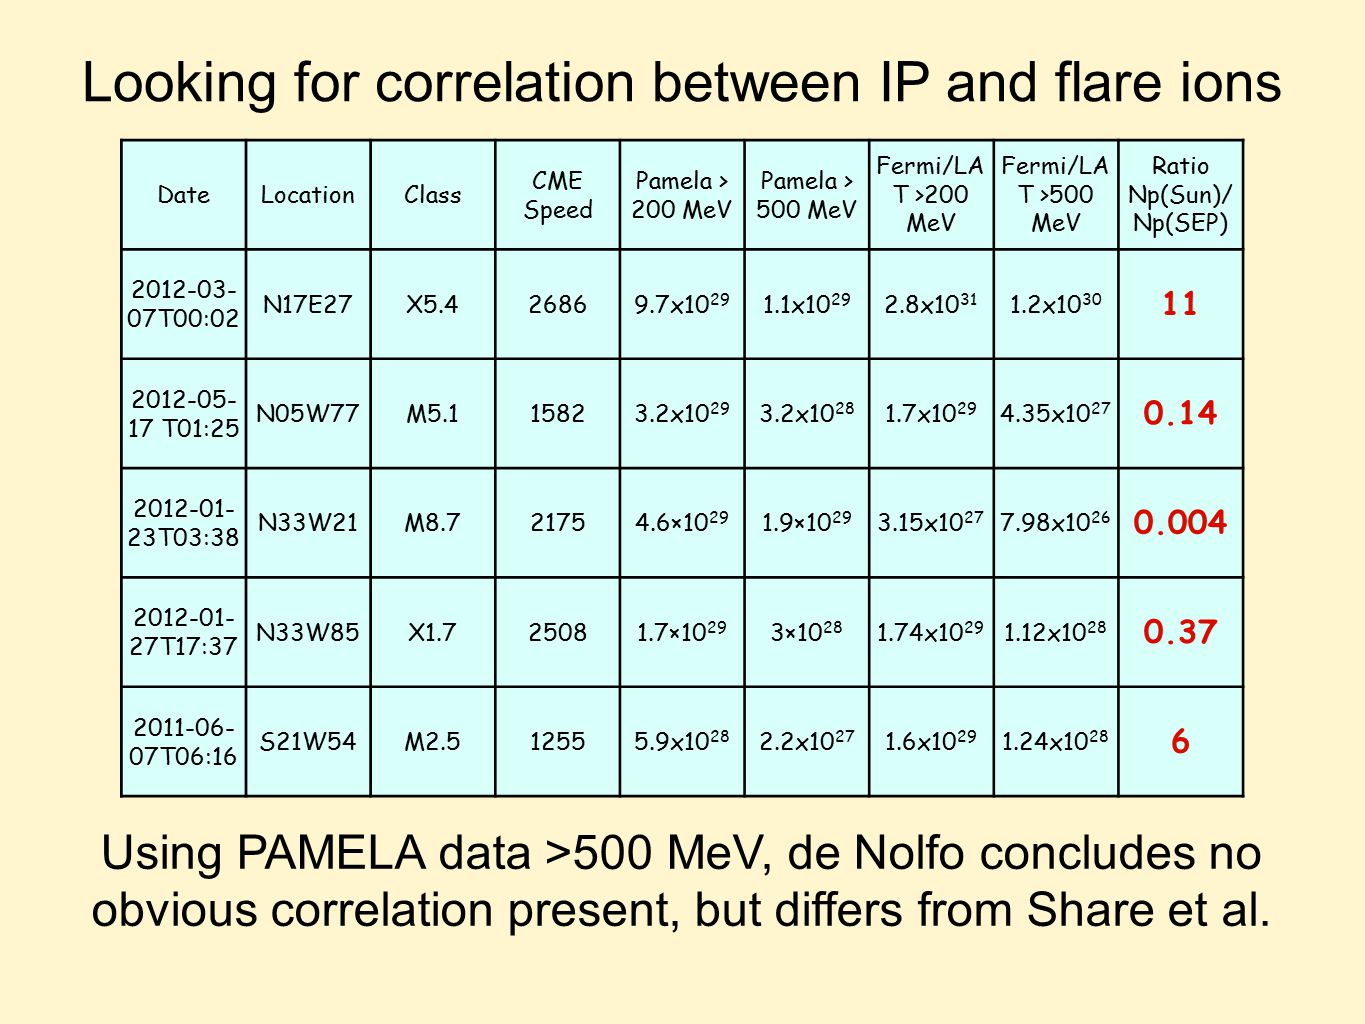 DateLocationClass CME Speed Pamela > 200 MeV Pamela > 500 MeV Fermi/LA T >200 MeV Fermi/LA T >500 MeV Ratio Np(Sun)/ Np(SEP) 2012-03- 07T00:02 N17E27X5.426869.7x10 29 1.1x10 29 2.8x10 31 1.2x10 30 11 2012-05- 17 T01:25 N05W77M5.115823.2x10 29 3.2x10 28 1.7x10 29 4.35x10 27 0.14 2012-01- 23T03:38 N33W21M8.721754.6×10 29 1.9×10 29 3.15x10 27 7.98x10 26 0.004 2012-01- 27T17:37 N33W85X1.725081.7×10 29 3×10 28 1.74x10 29 1.12x10 28 0.37 2011-06- 07T06:16 S21W54M2.512555.9x10 28 2.2x10 27 1.6x10 29 1.24x10 28 6 Looking for correlation between IP and flare ions Using PAMELA data >500 MeV, de Nolfo concludes no obvious correlation present, but differs from Share et al.